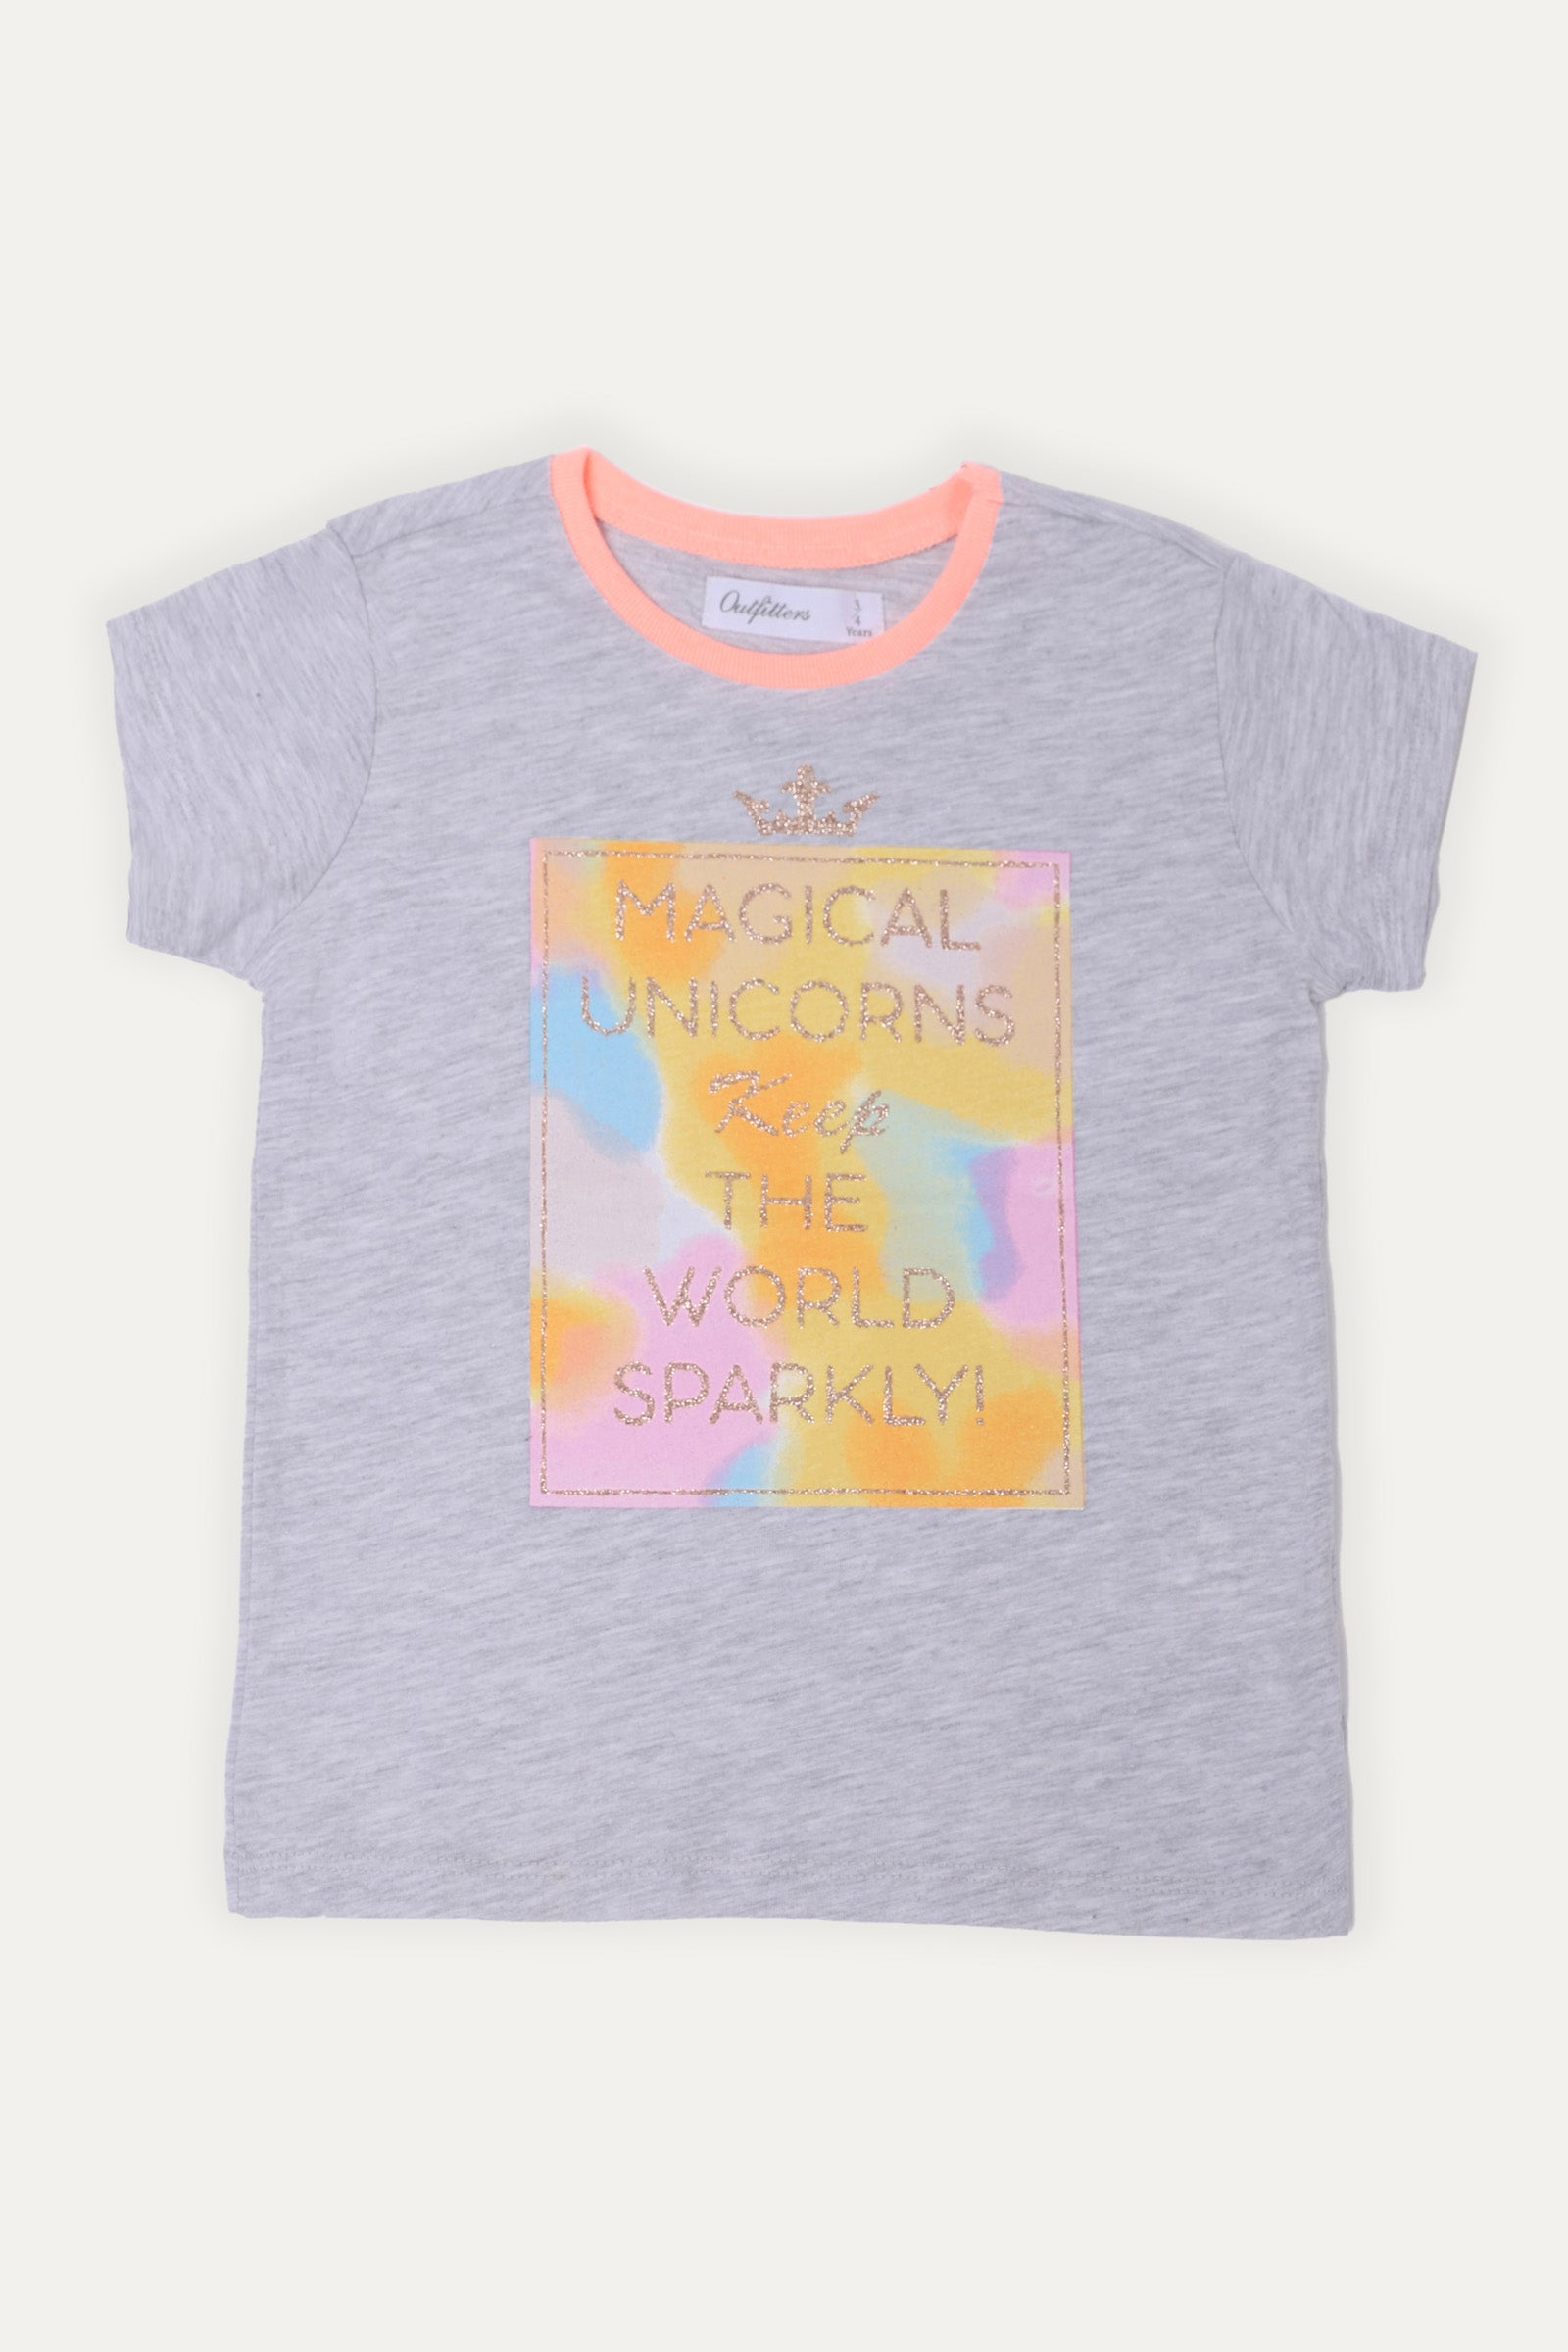 Glittered Statement T-shirt